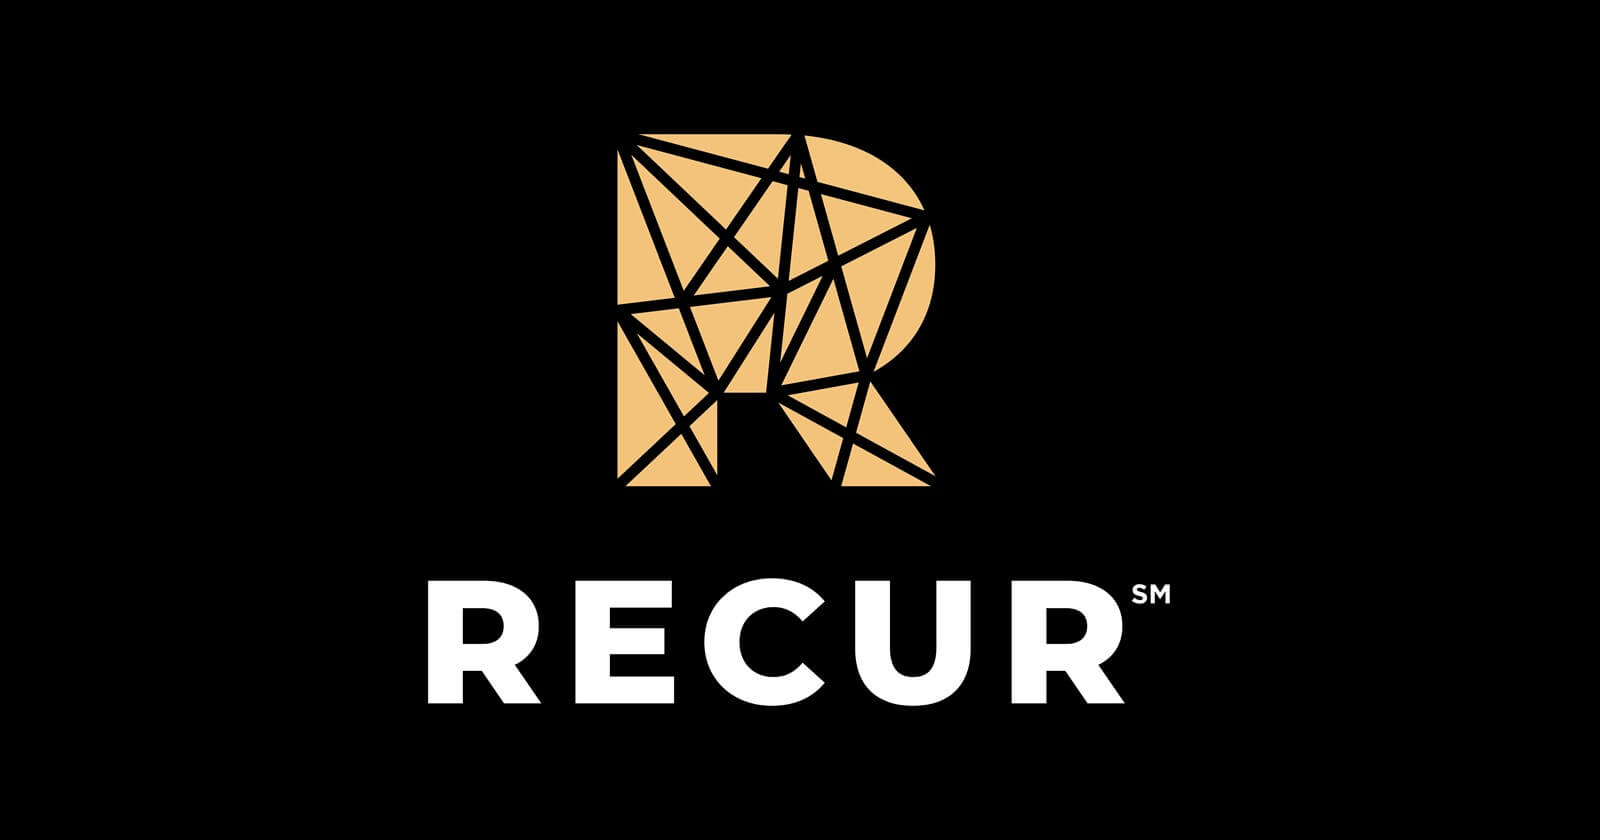 RECUR Announces $5M Seed Raise From Industry Innovators, The Largest In NFT History, To Build Branded NFT Fan Experiences image